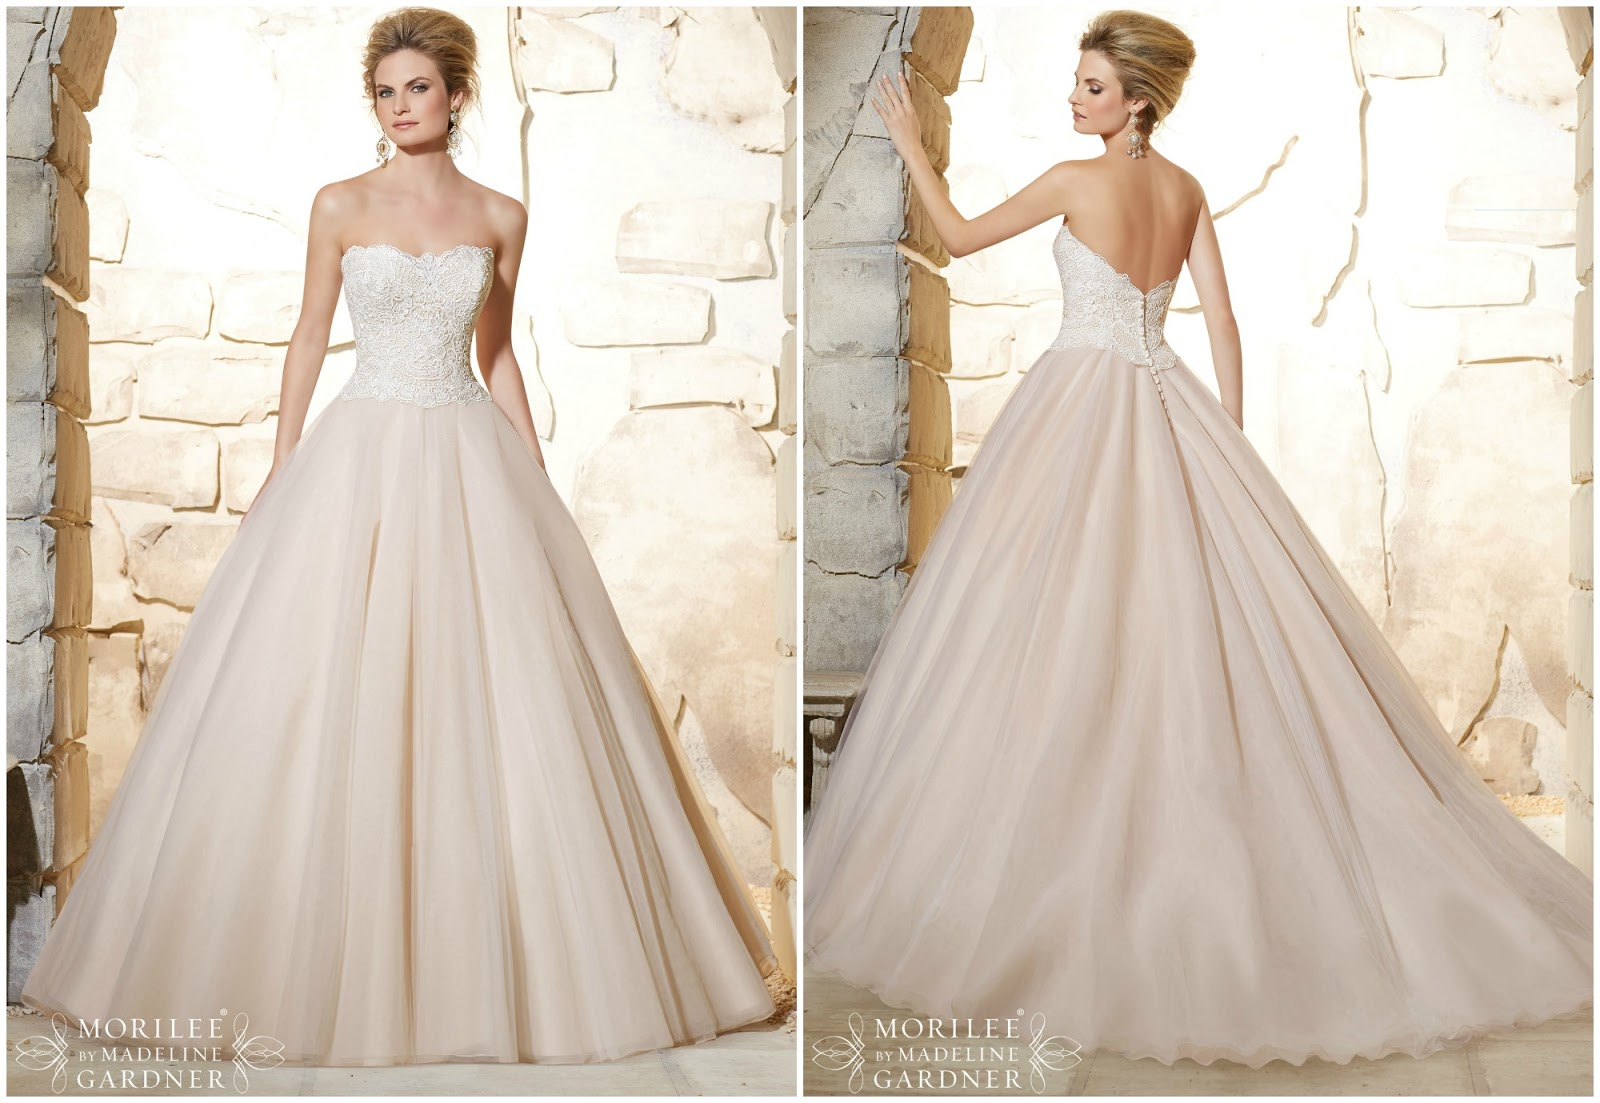 Brides of america online store don 39 t miss our december for Wedding dresses miami stores